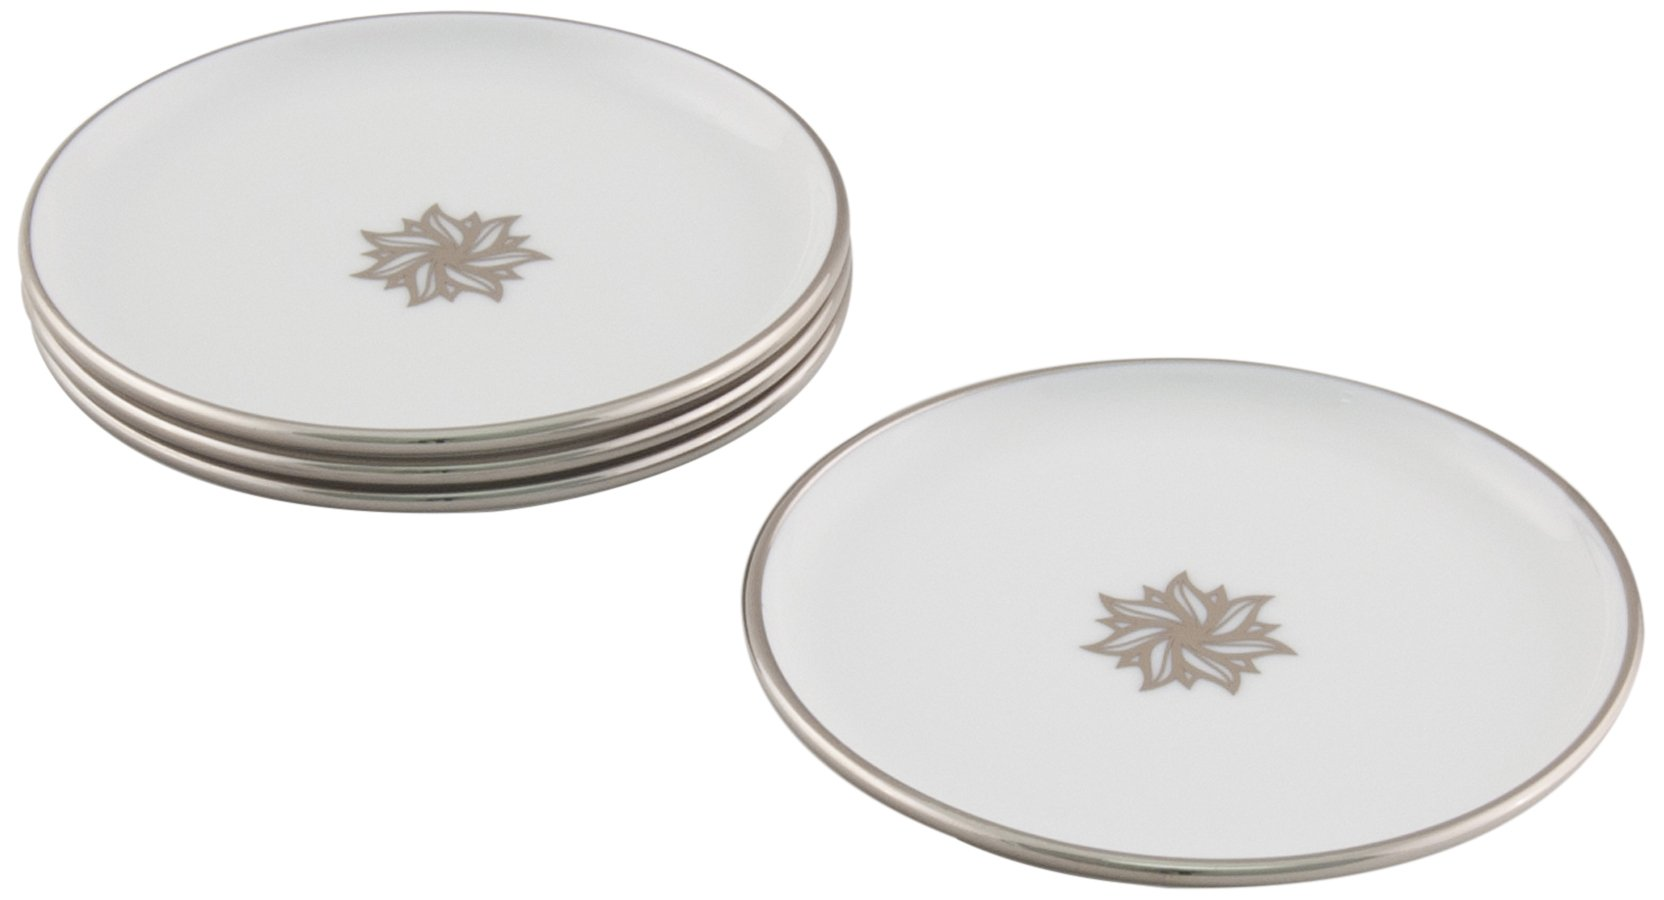 Maison Alma AR102WP Arienne Collection Decorative Drink Coasters, White Limoges Porcelain with Platinum Accents, Set of 4